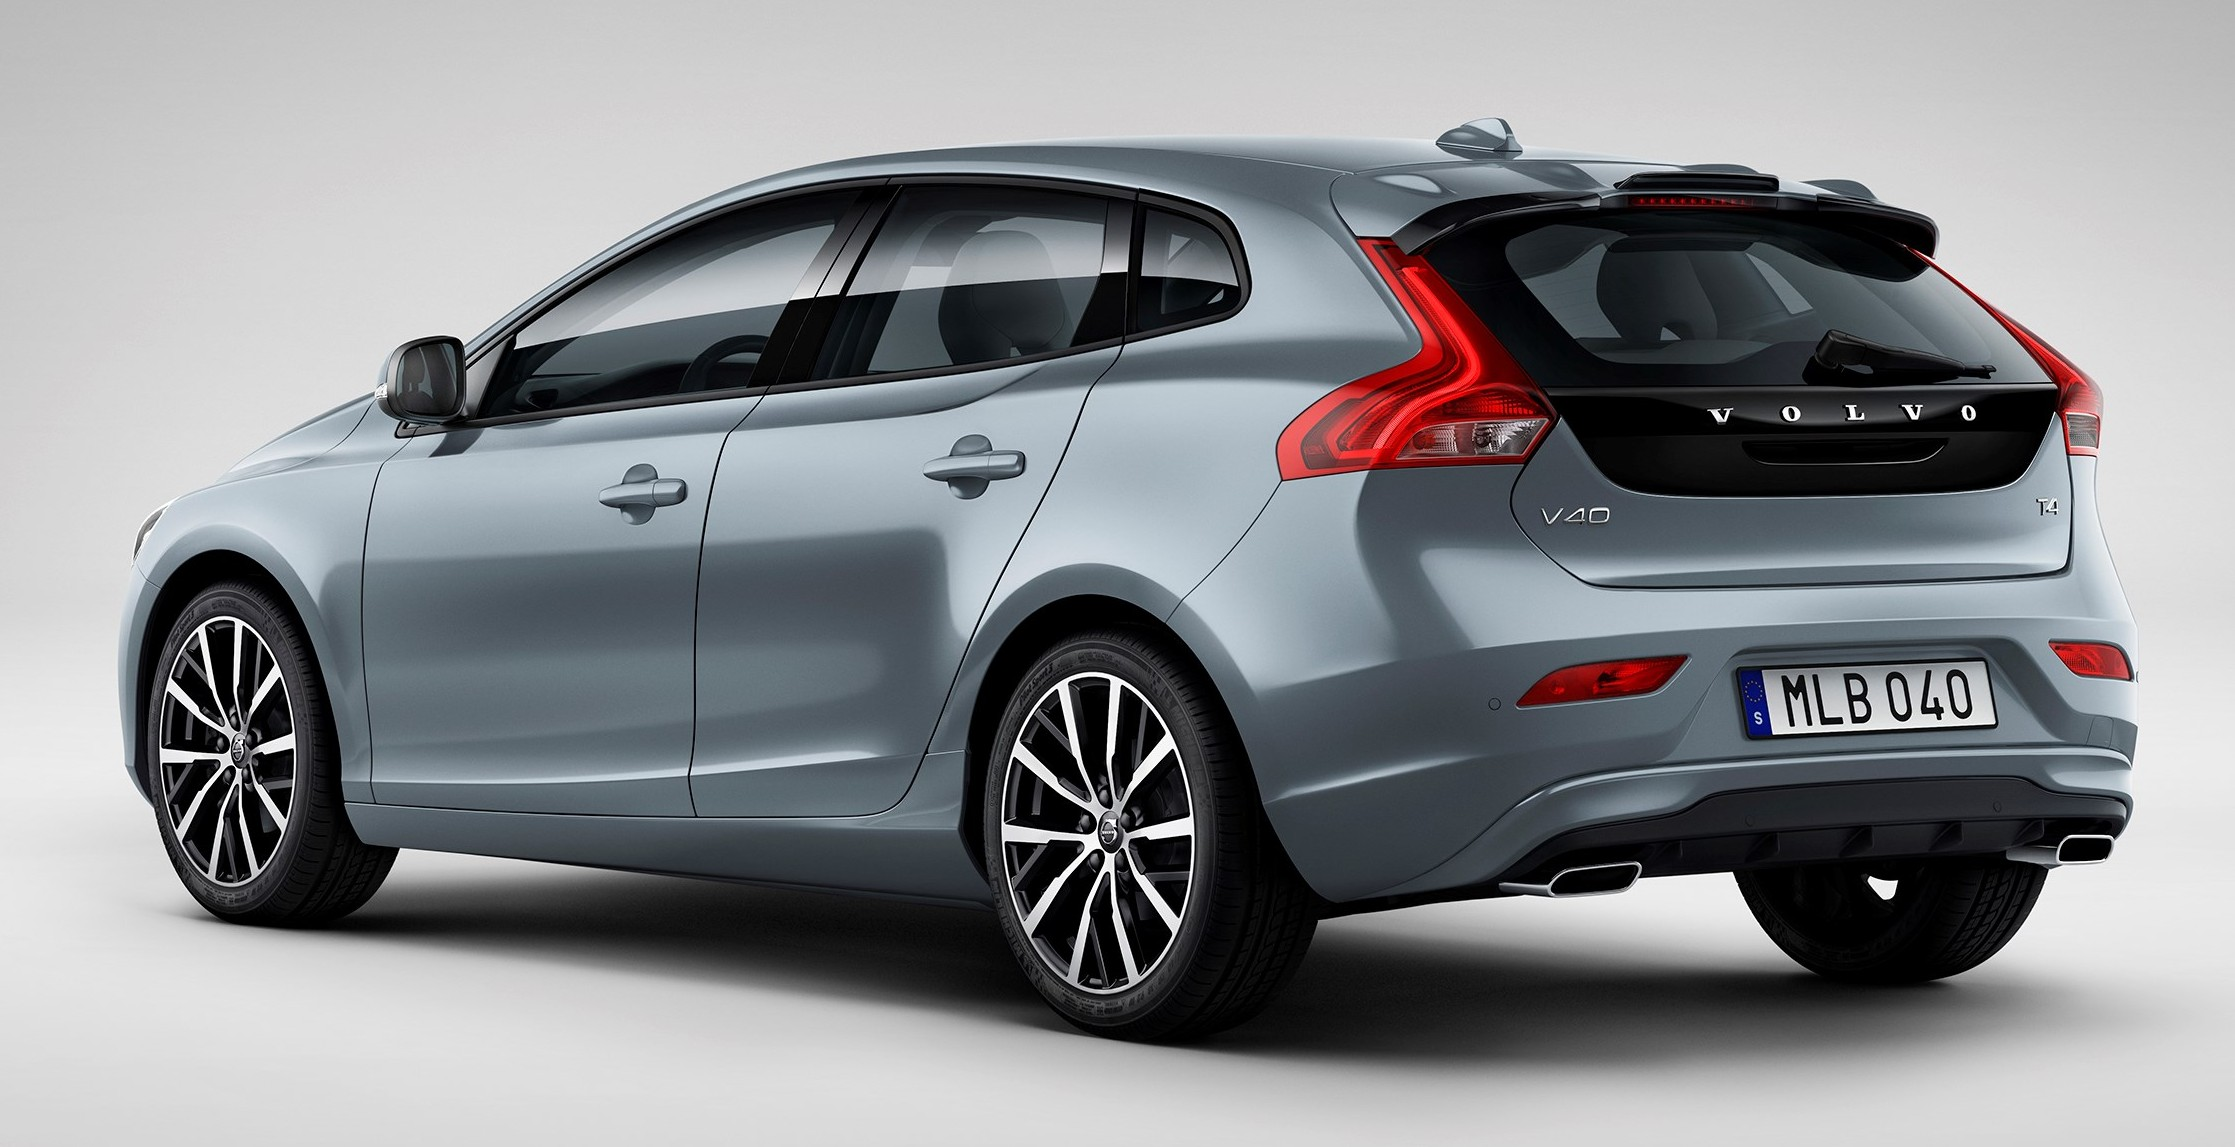 volvo v40 v40 cross country fl revealed for geneva paul tan image 447527. Black Bedroom Furniture Sets. Home Design Ideas